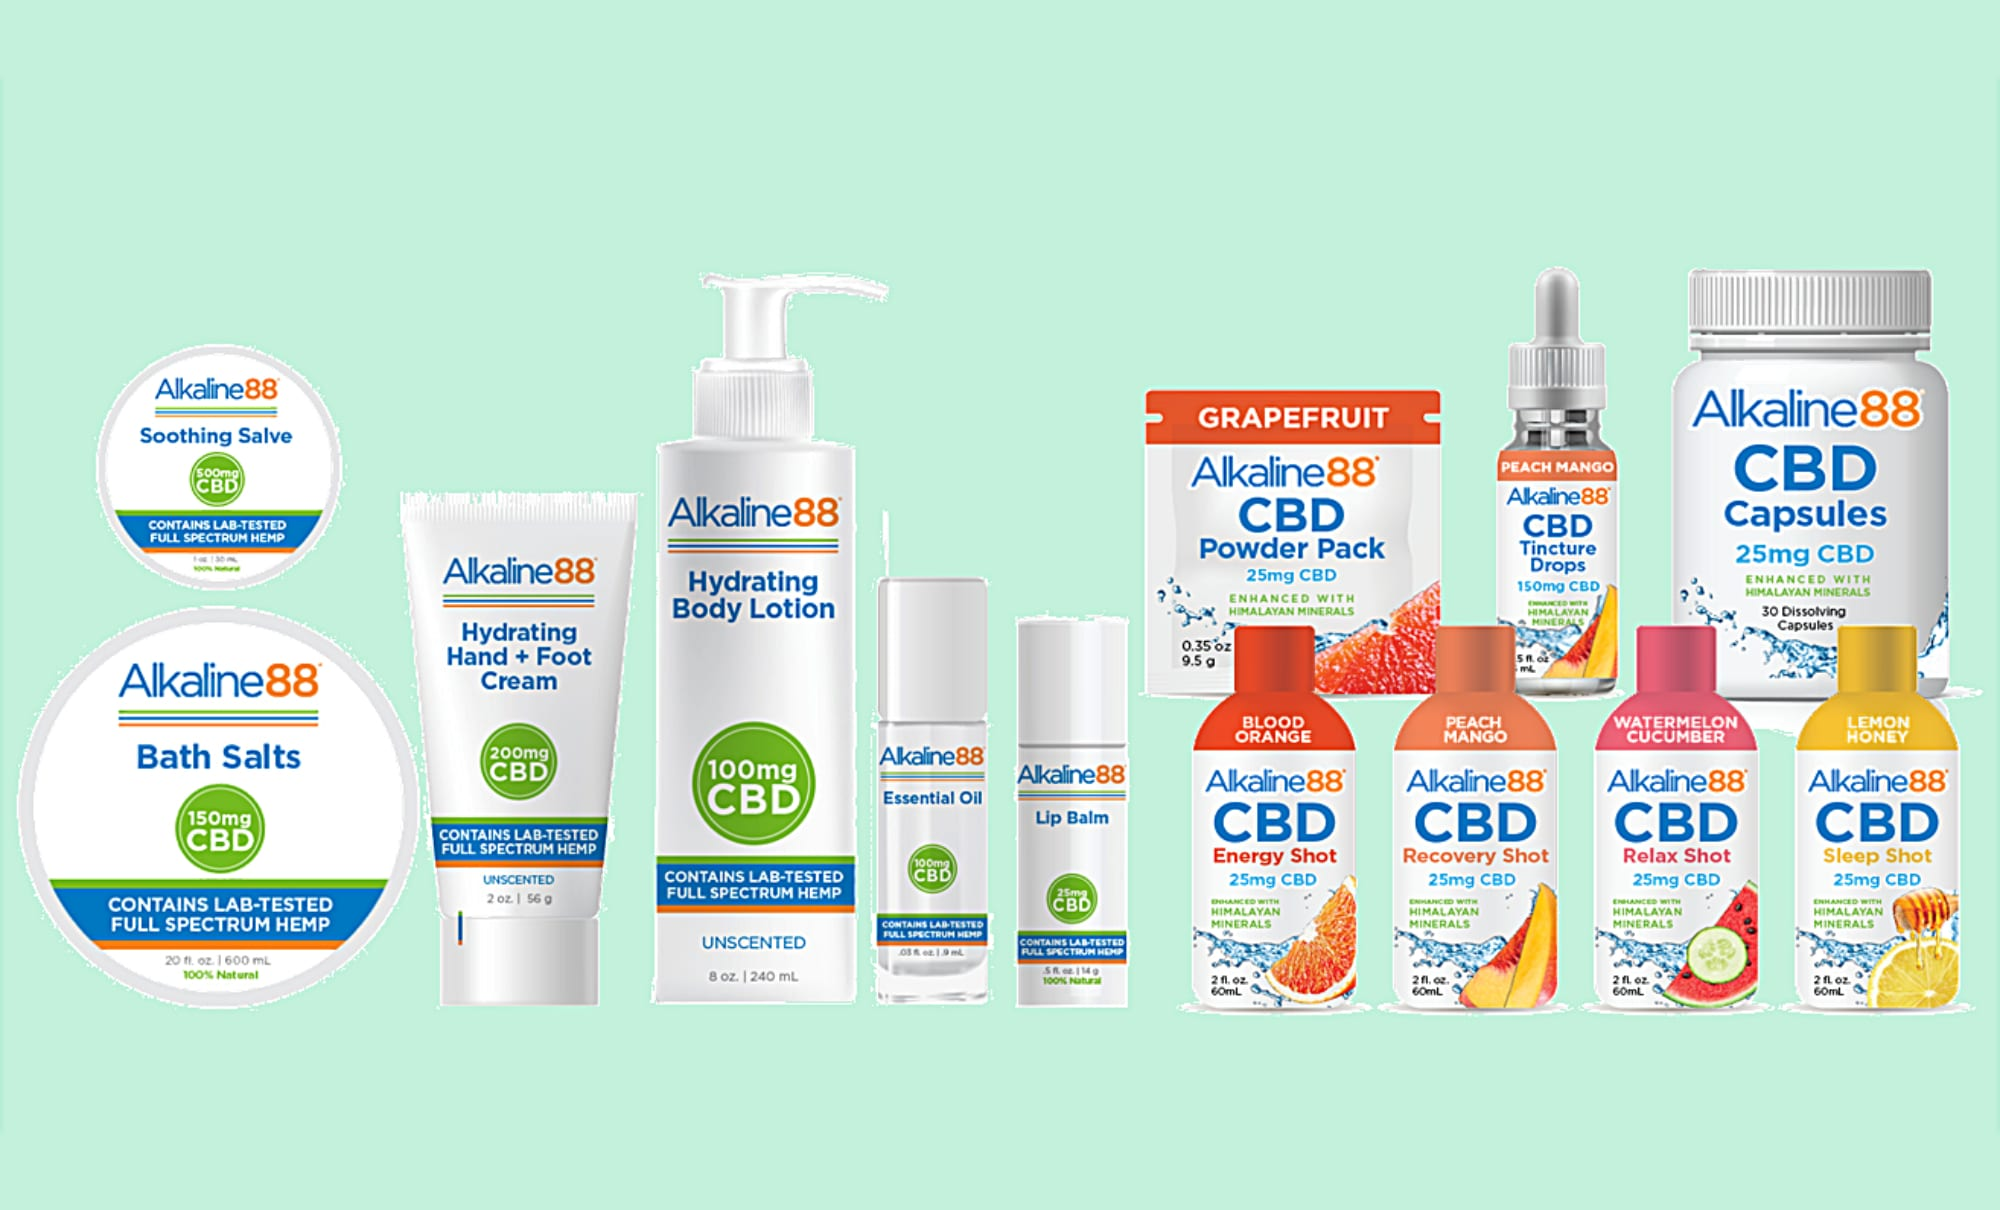 Alkaline Water Gets Topical: Company Behind Alkaline88 Brand Extends CBD Product Line